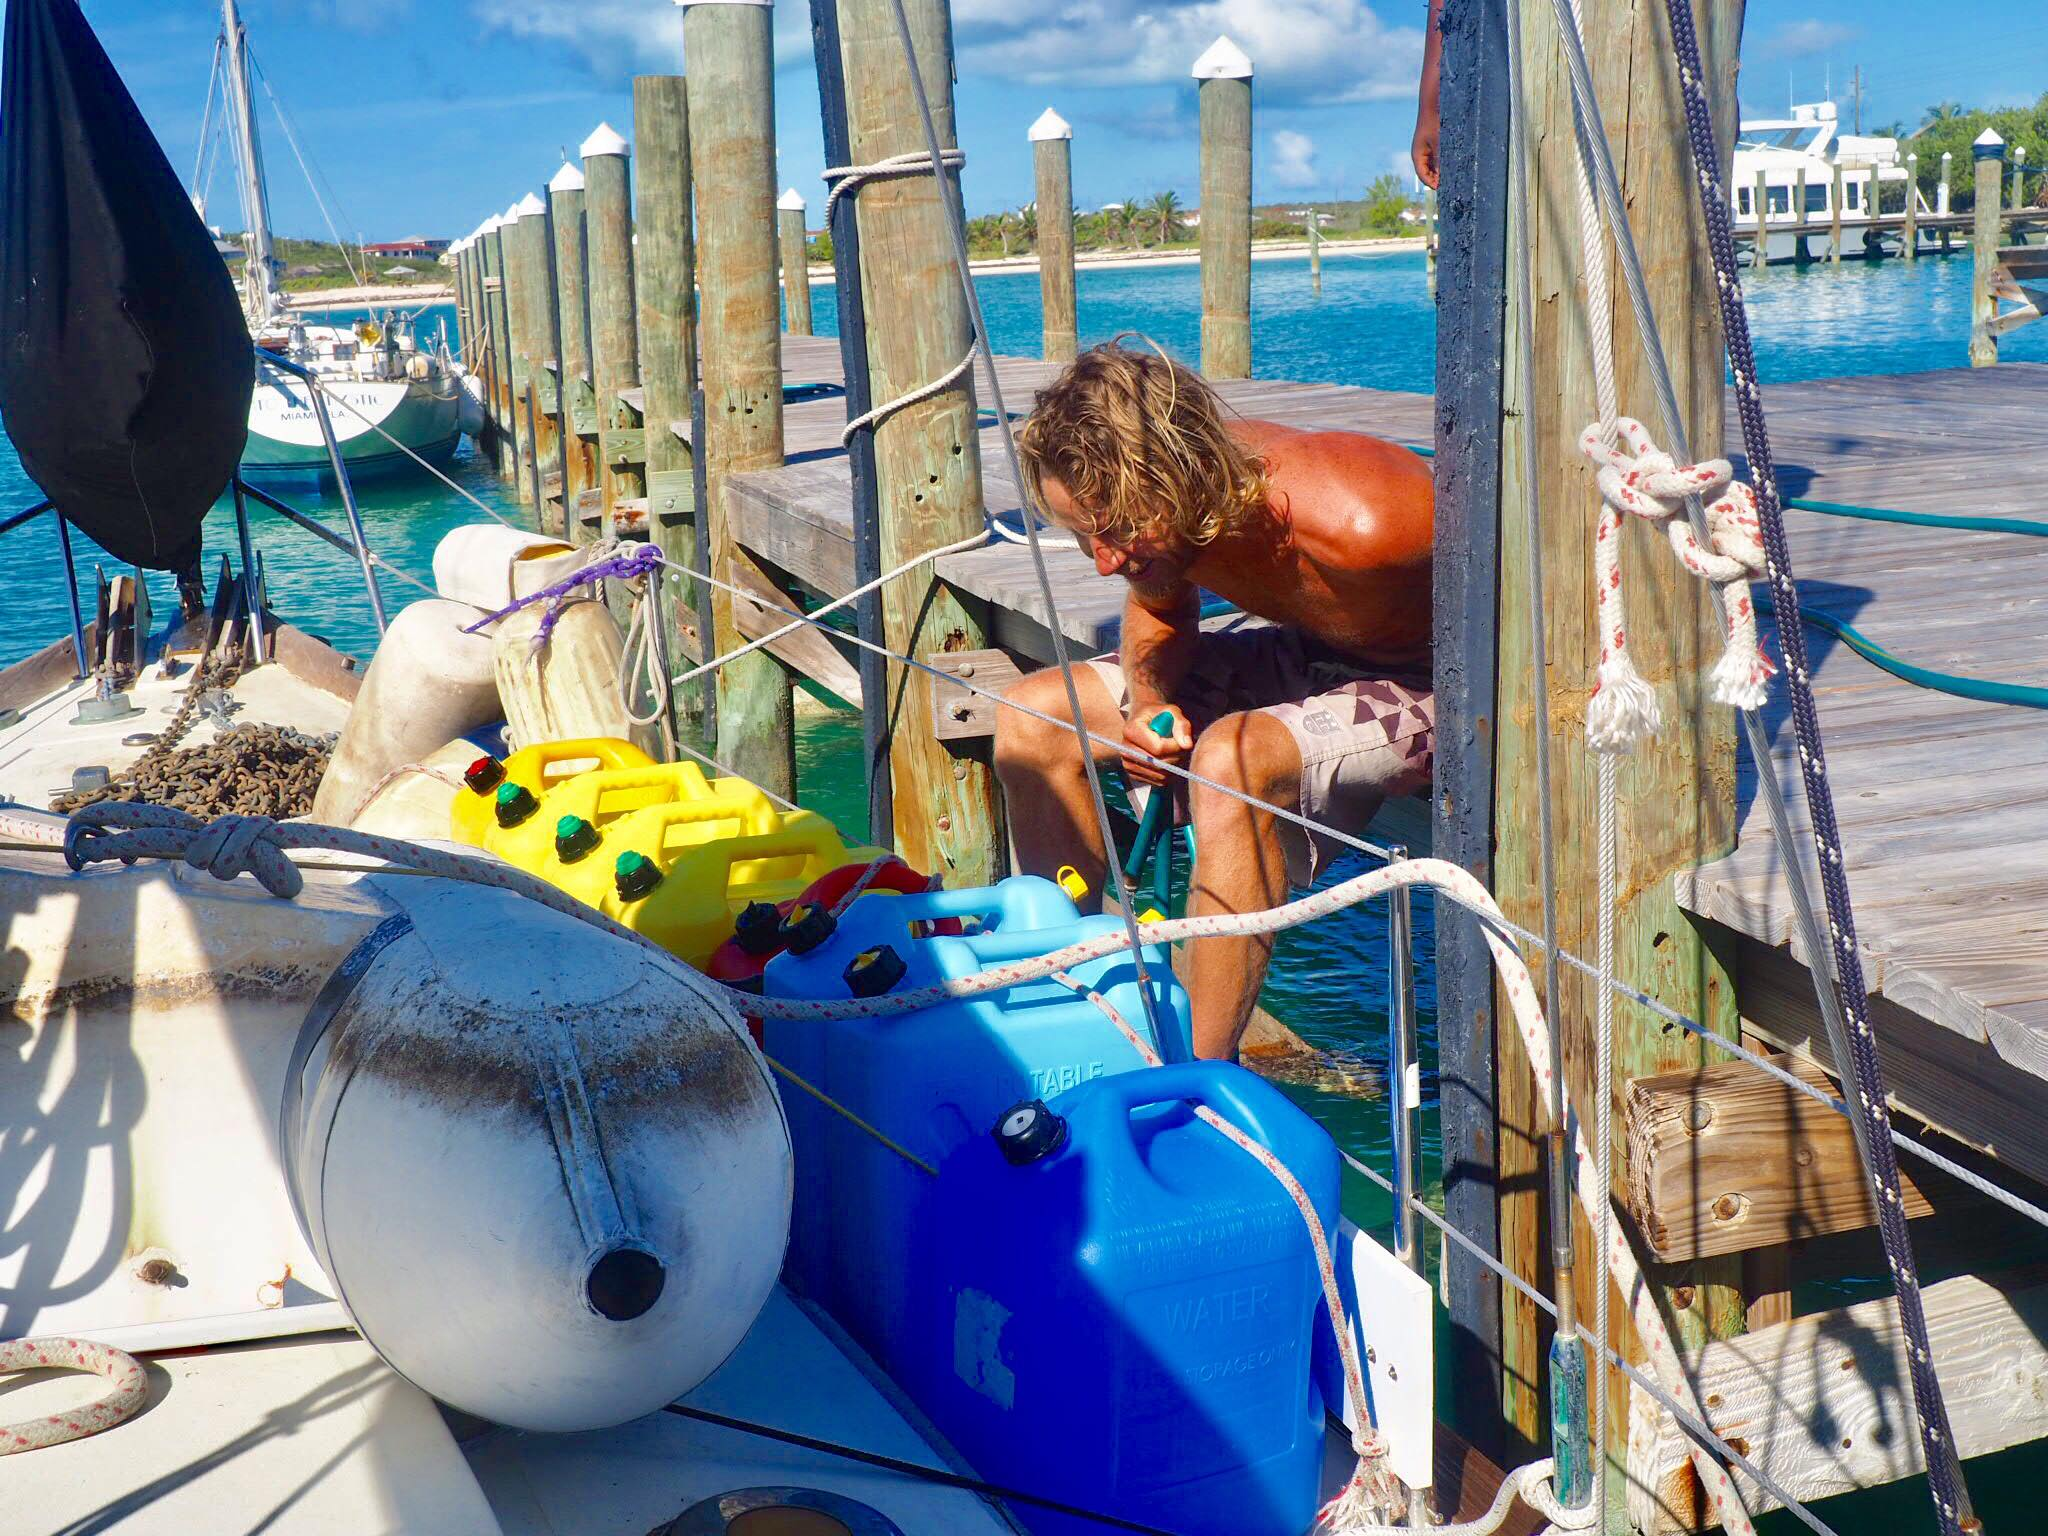 Sailing Life Day 41: Overnight Sailing from Clarence Town, Long Island to Abraham's Bay in Mayaguana, our last stop in The Bahamas!